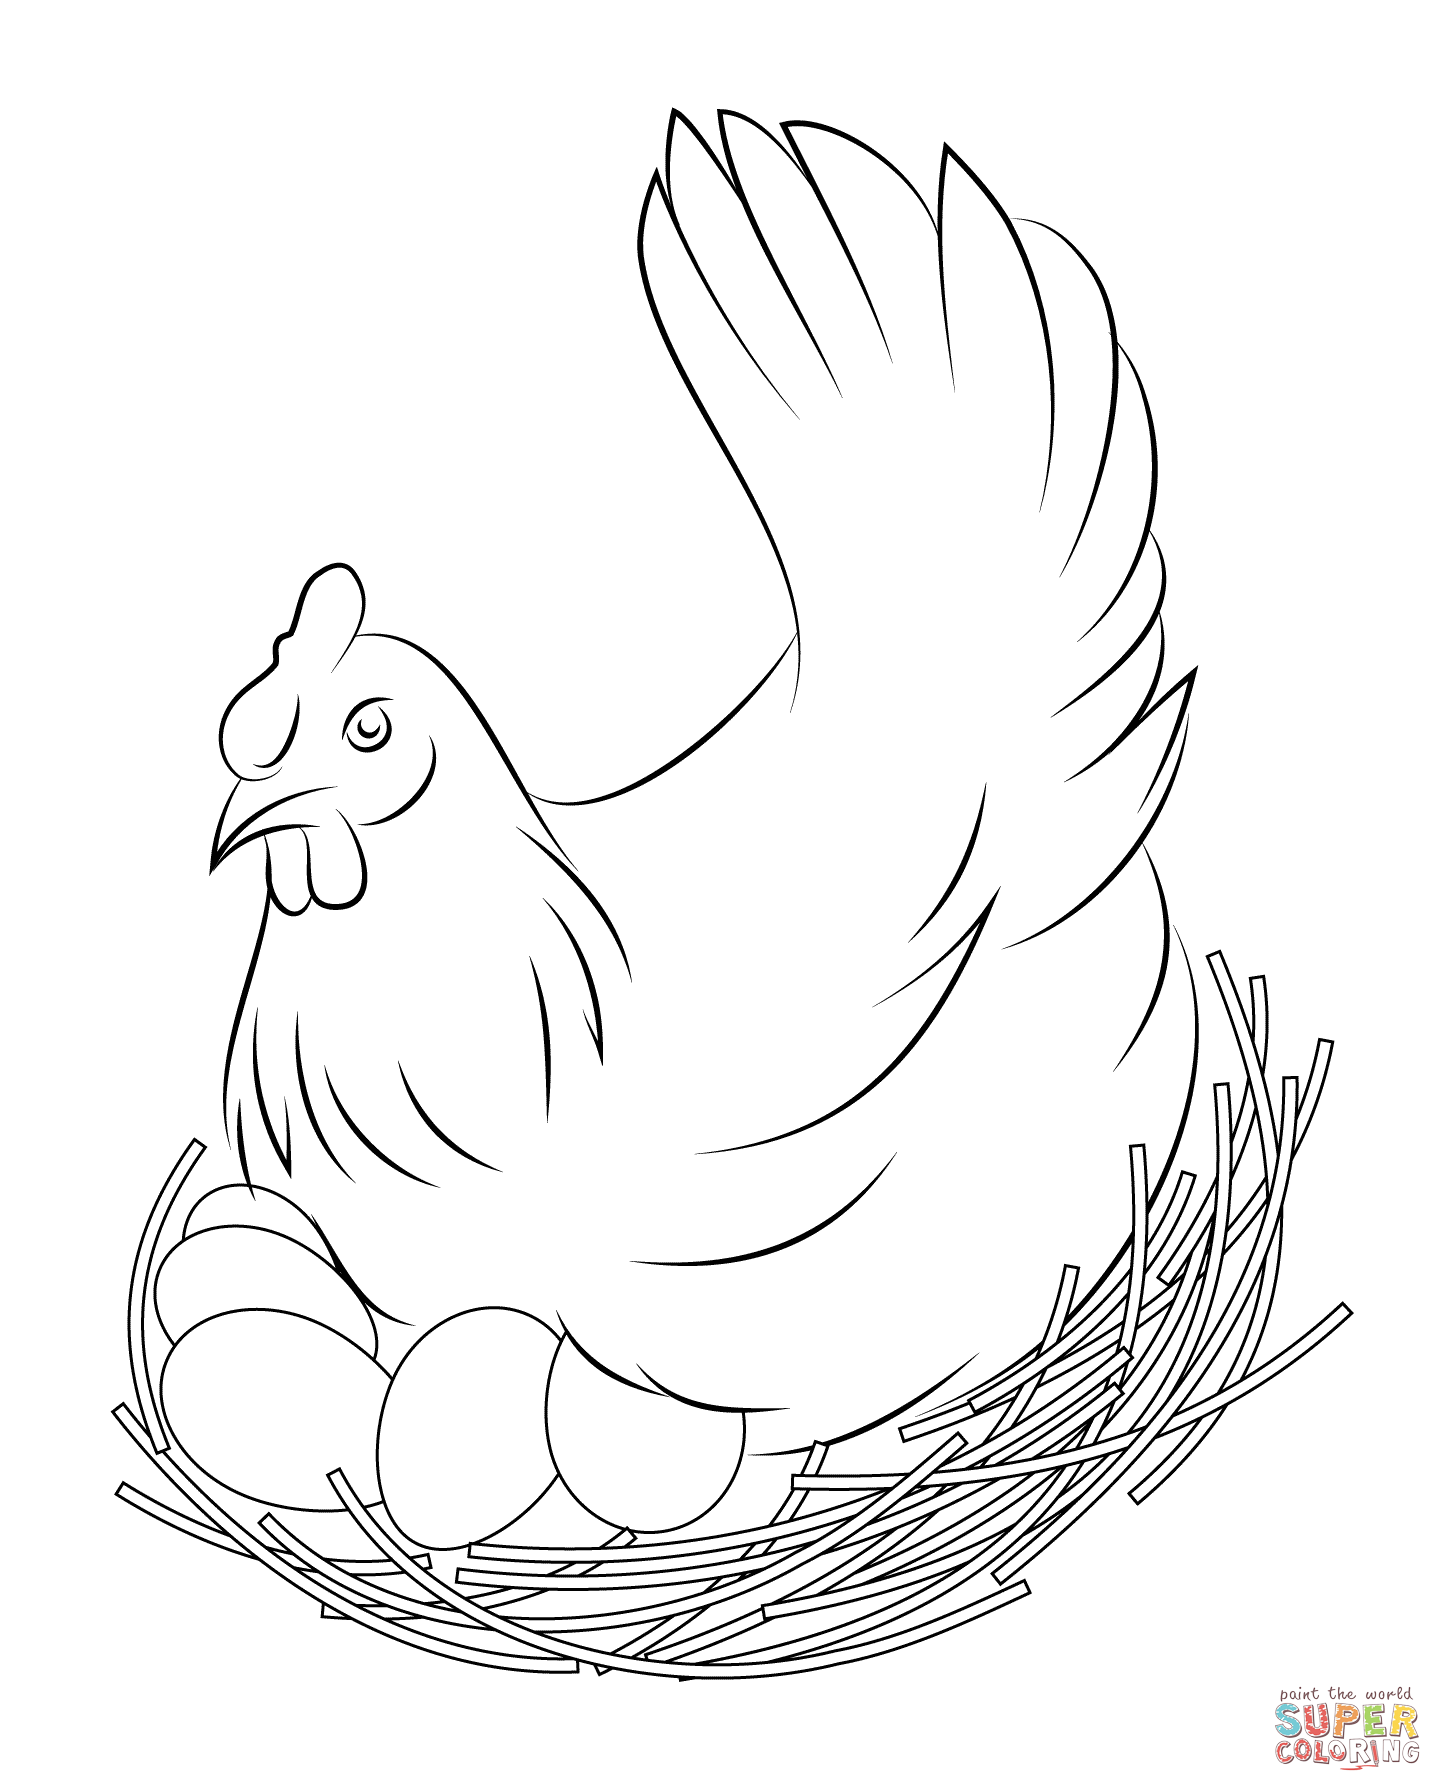 Chicken coloring pages | Free Coloring Pages | Coloring ...